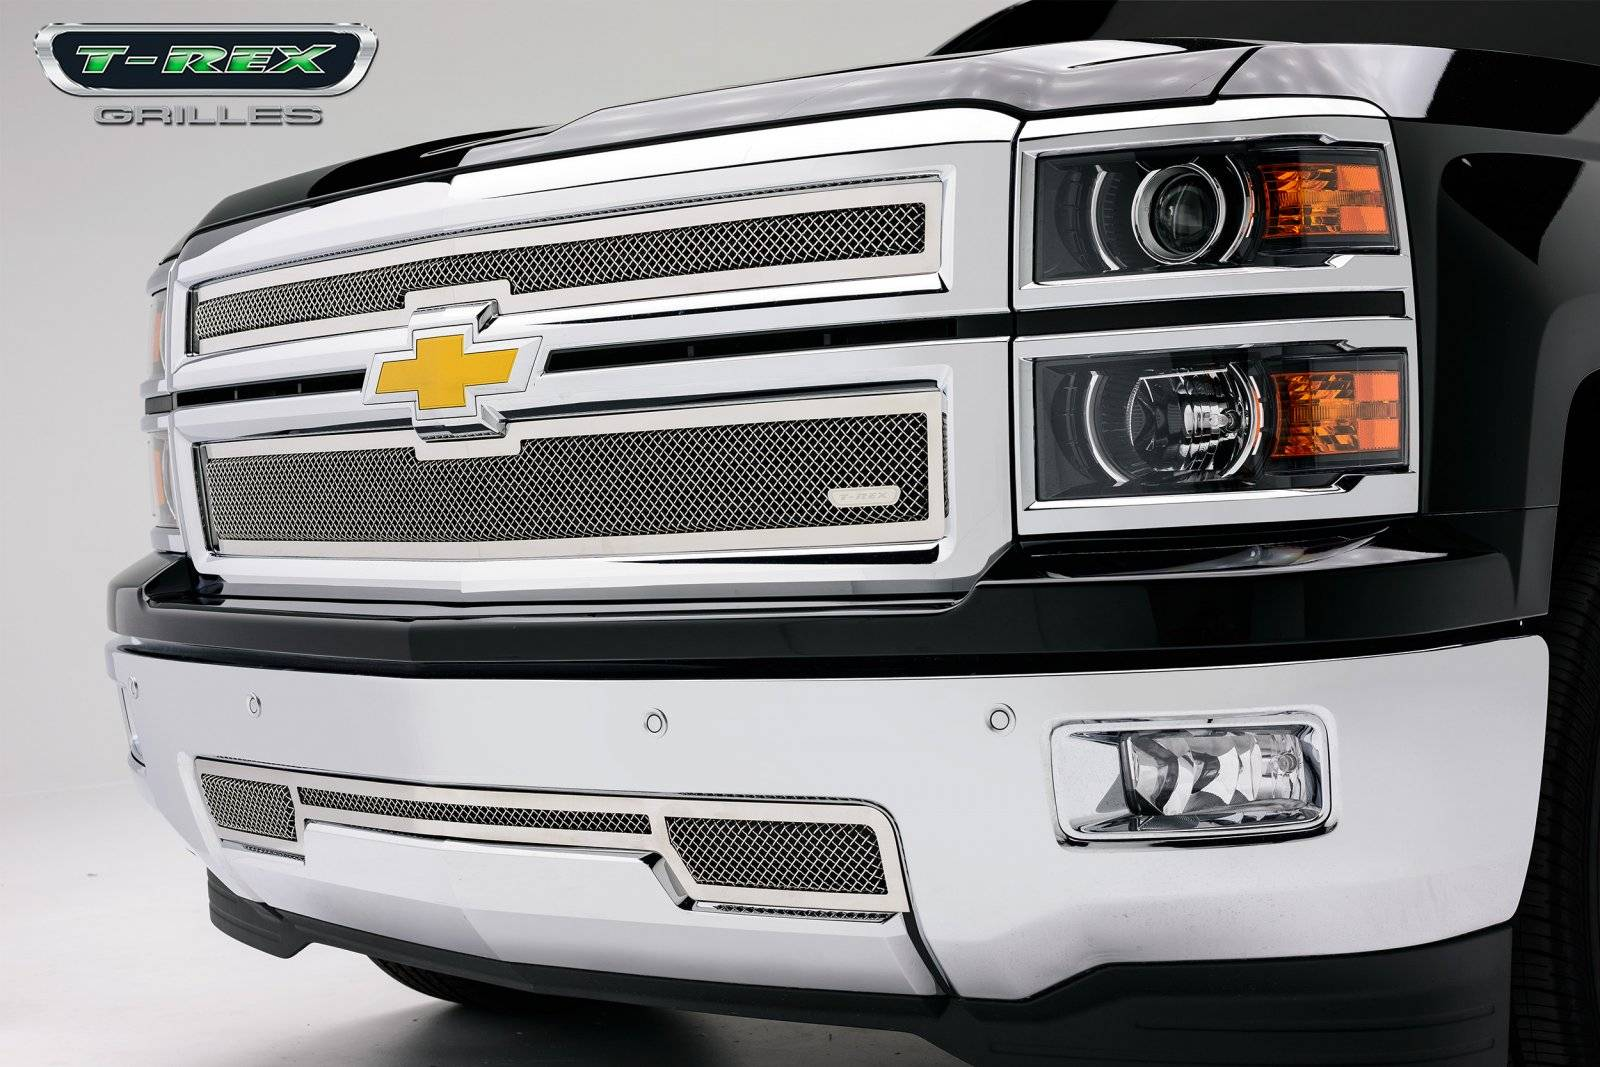 T-REX Grilles - Chevrolet Silverado Z71 Upper Class Polished Stainless Main Grille - 2 PC Style - Pt # 54120